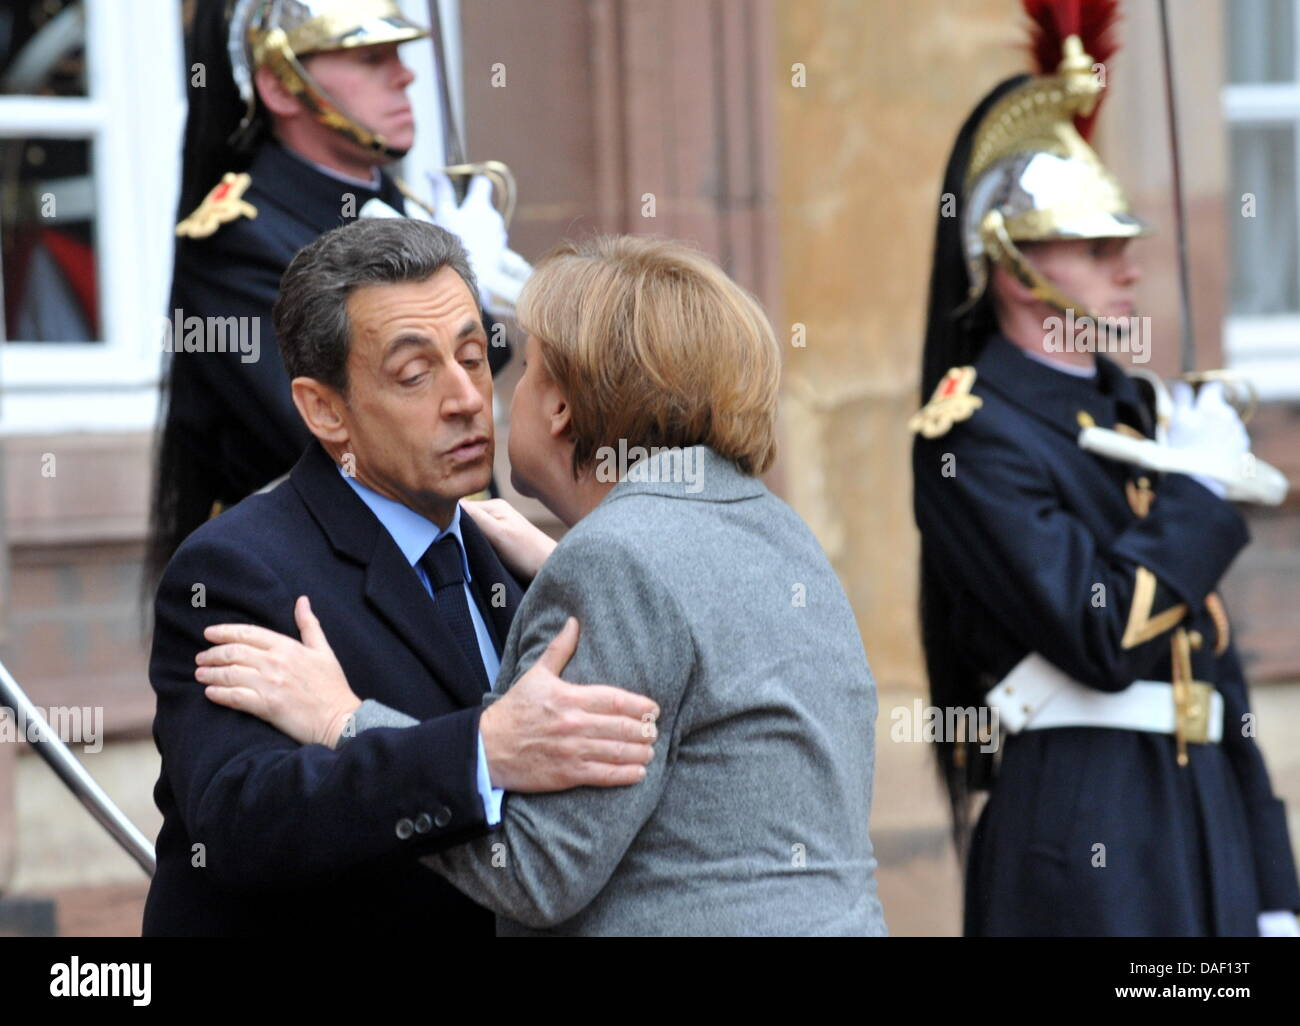 French President Nicolas Sarkozy L Greets German Chancellor Angela